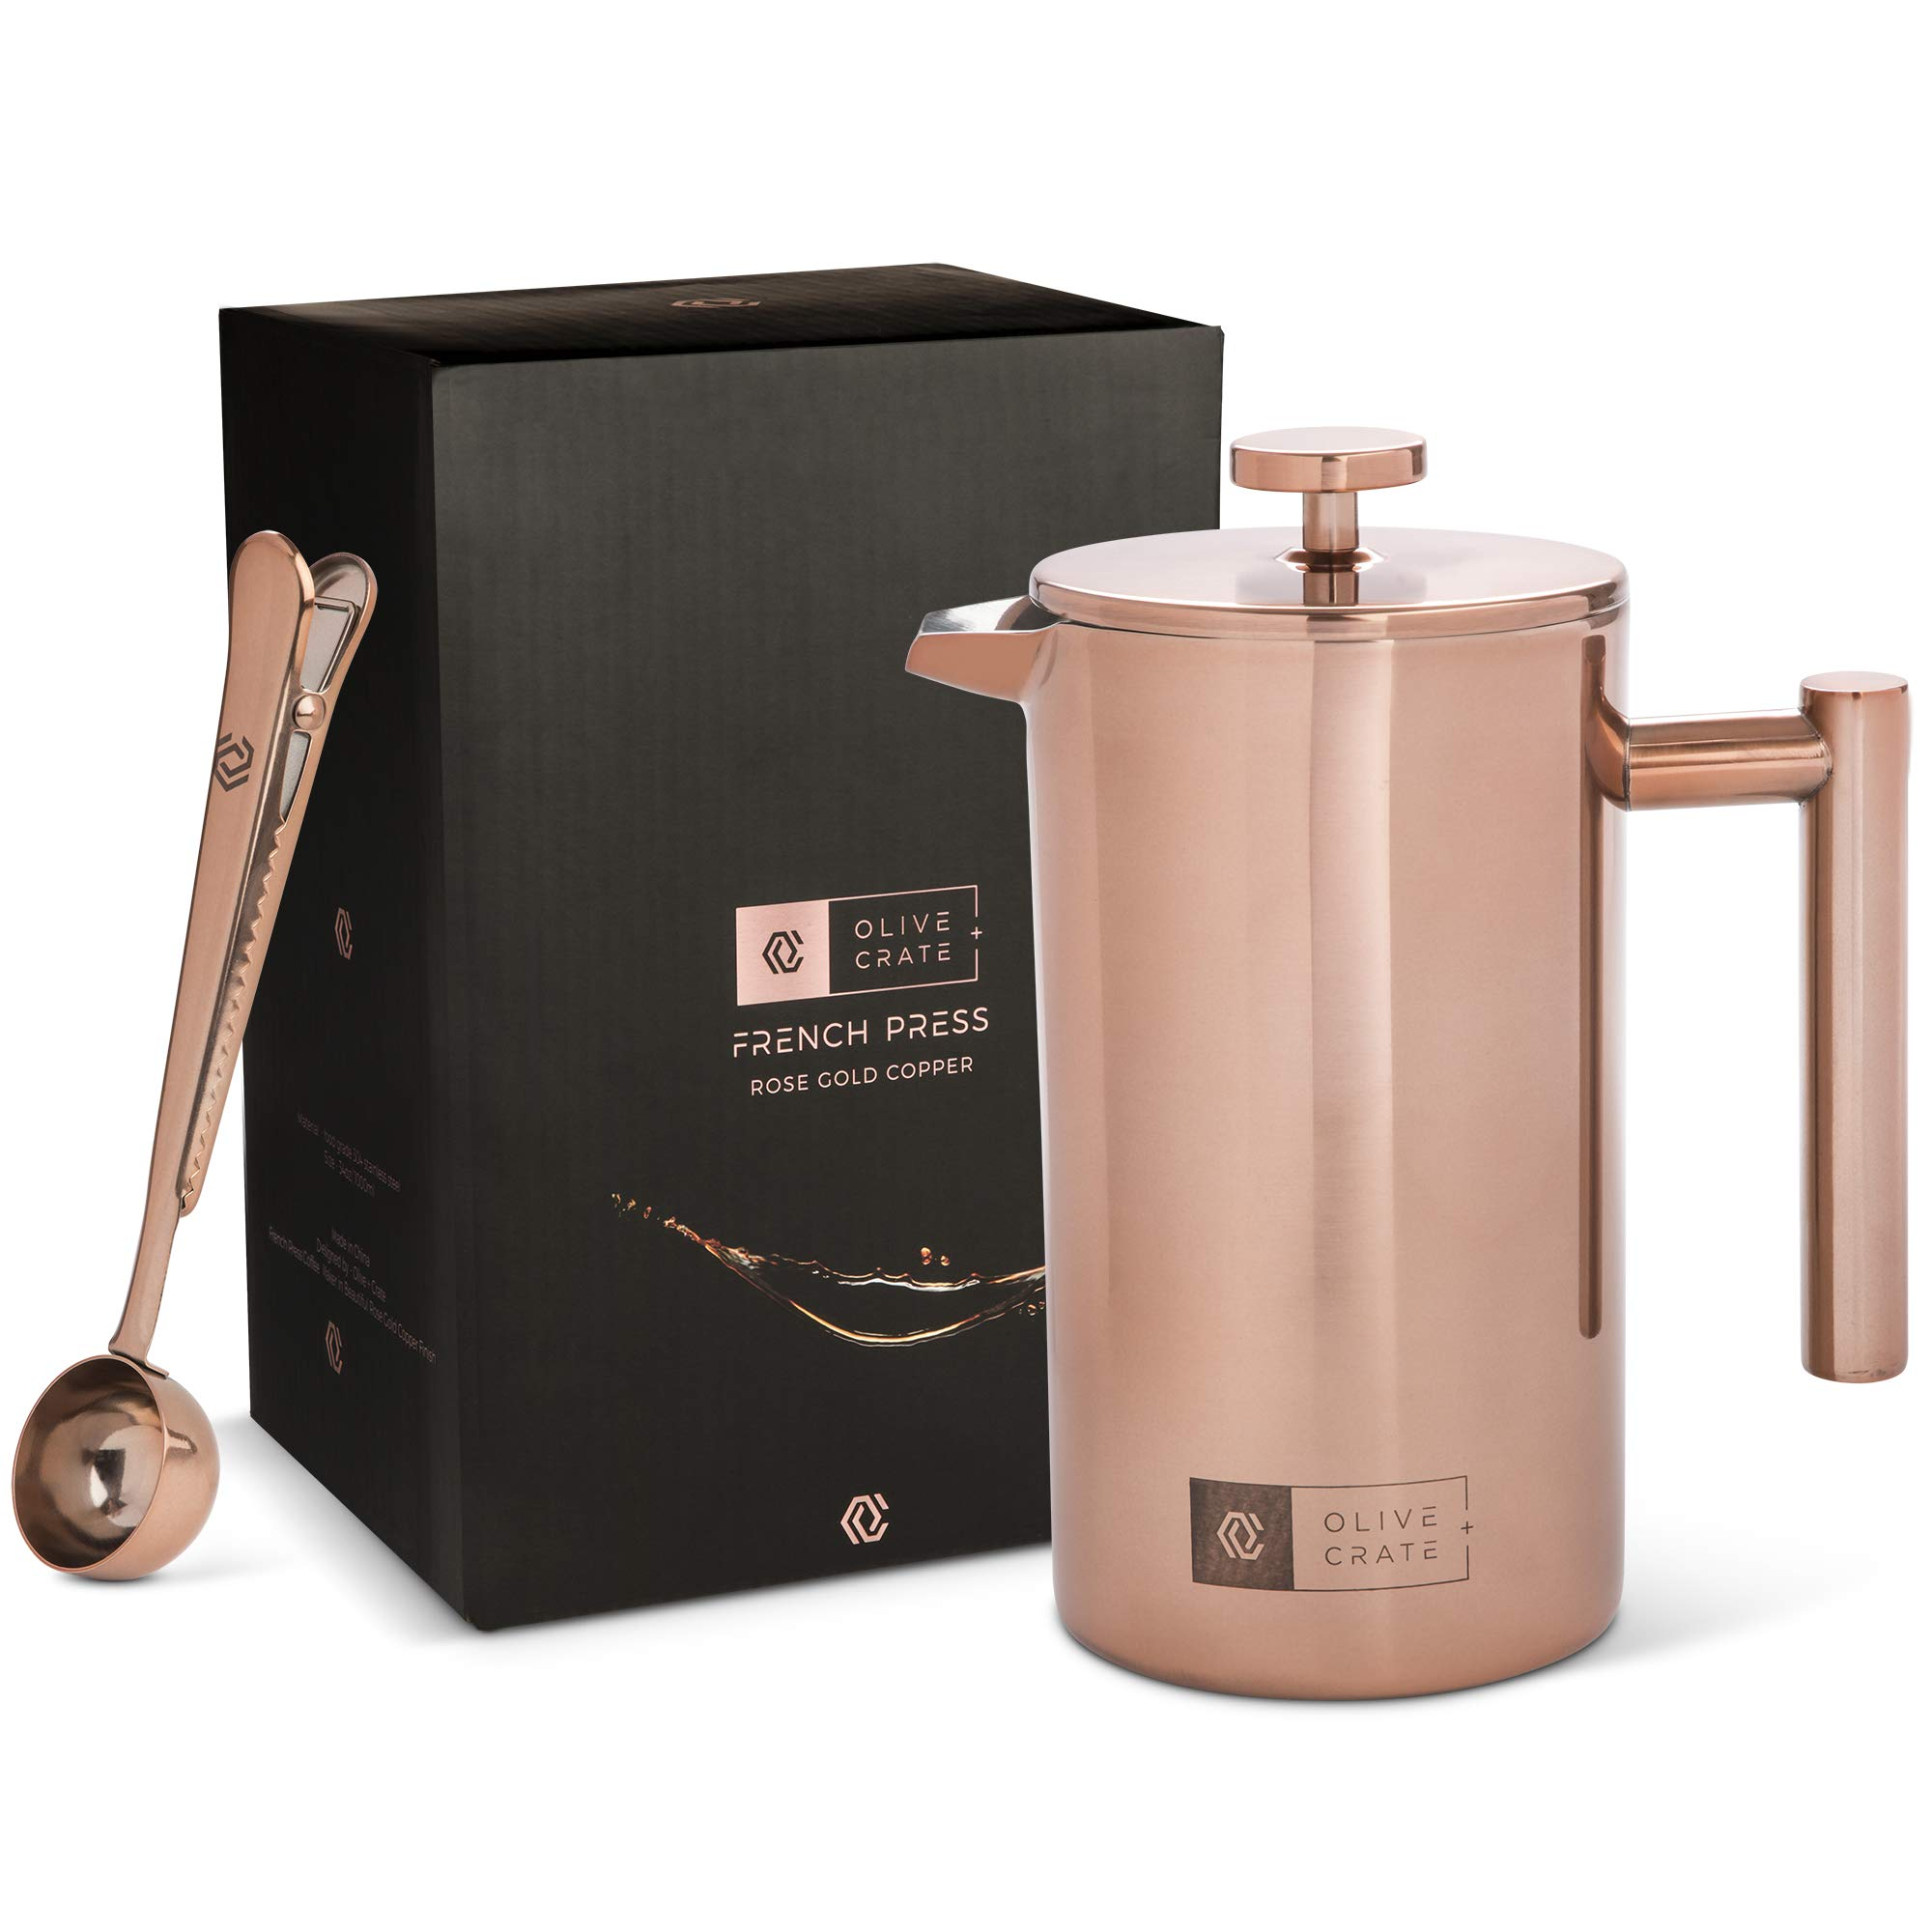 Copper French Press Coffee Maker, Measuring Spoon and Clip - Portable, Manual Coffee Makers - Double-wall, Stainless Steel Pot and Brewer, Great For Travel and Outdoors, Rose Gold, 34 oz